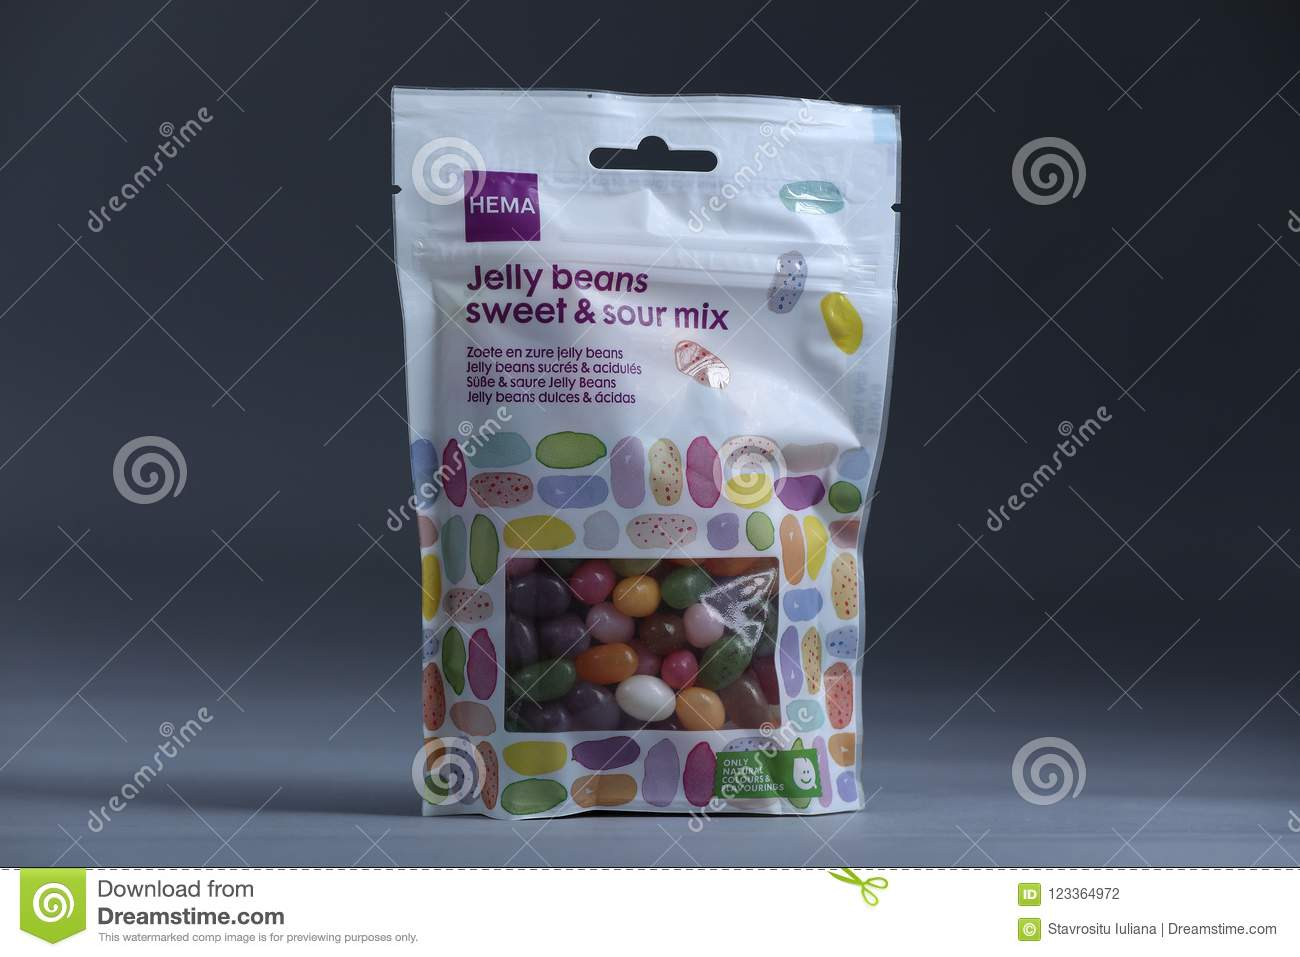 Jelly Beans From Hema, Dutch Store, Isolated Editorial